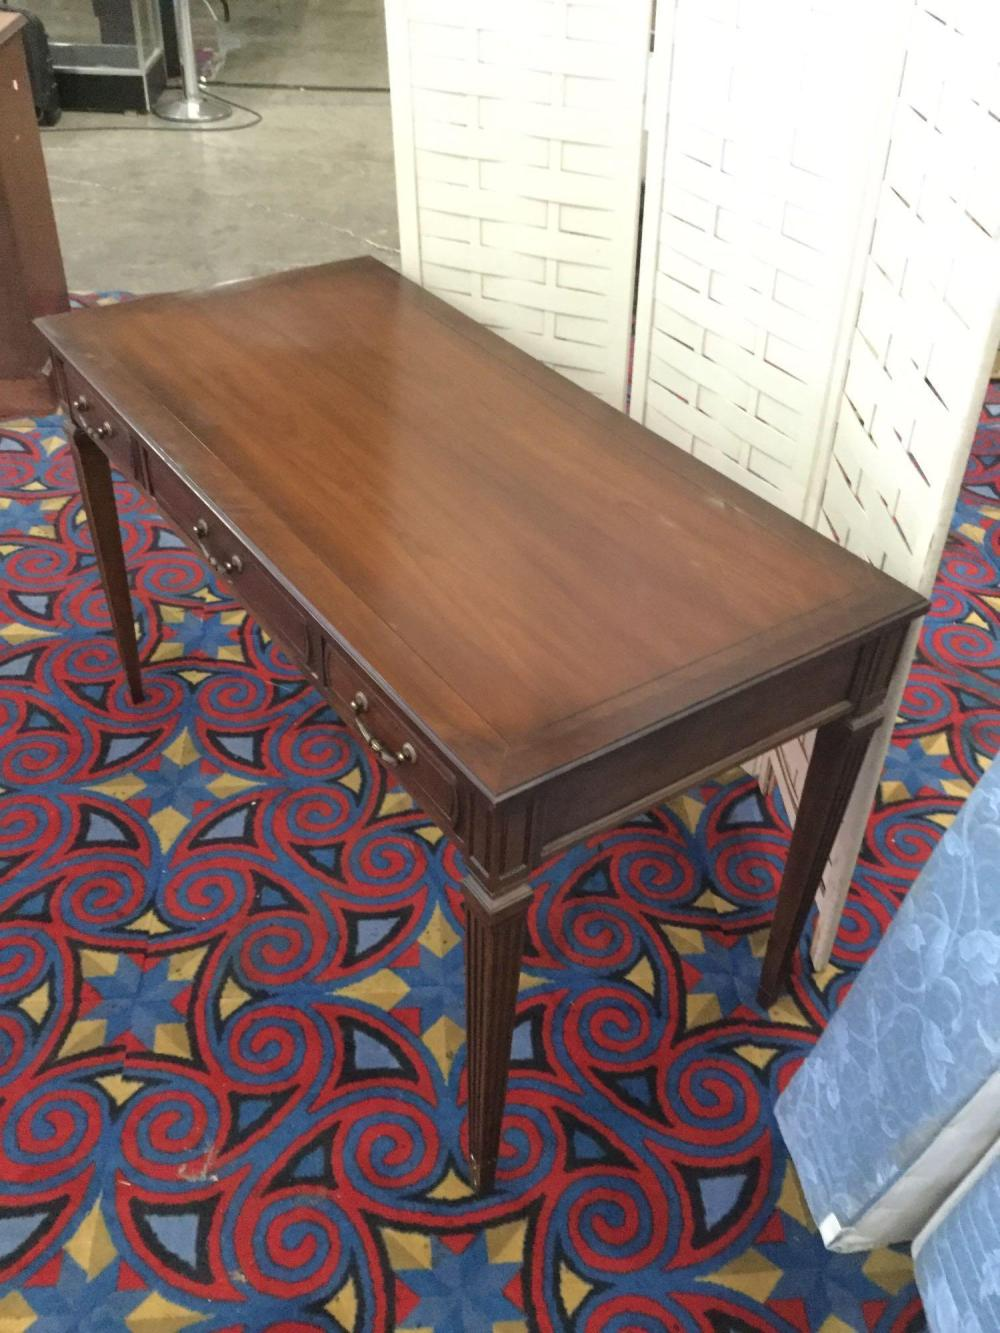 Lot 130: Vintage Harmony writing desk with 3 simple drawers